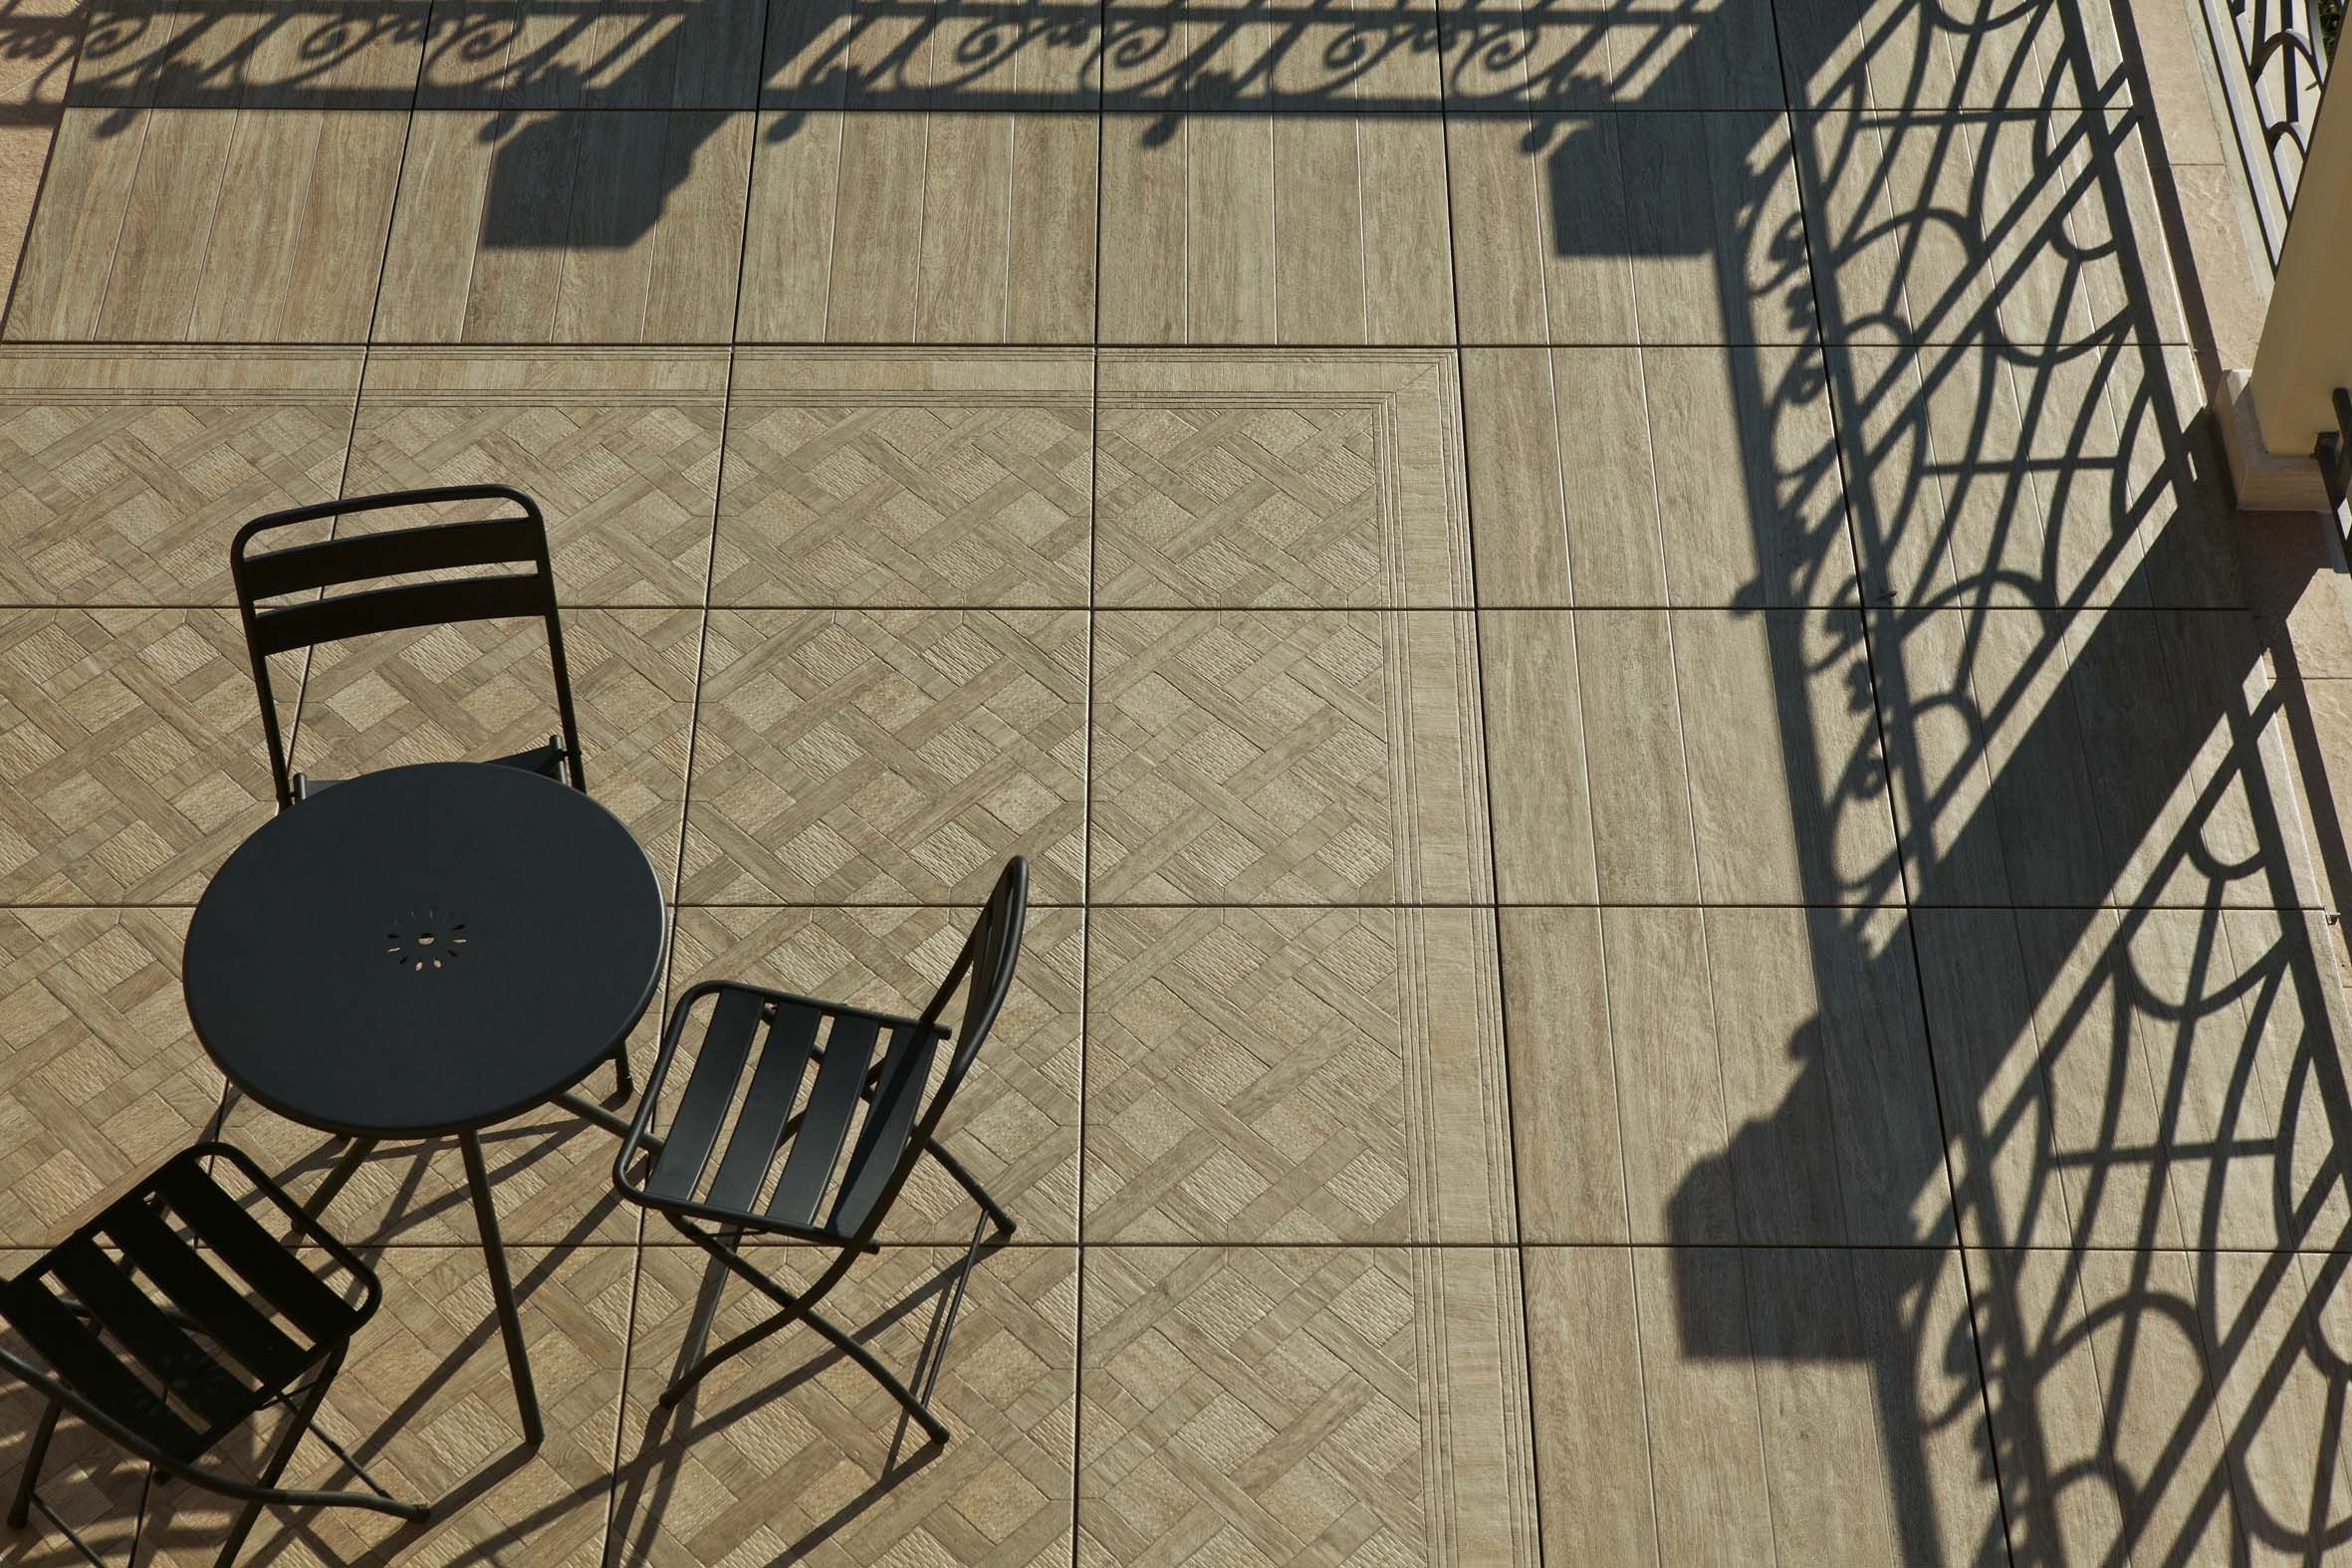 Decorative Outdoor Tiles Amusing Parquet For The Outdoors Woodays 20Mmthick Porcelain Tiles Review